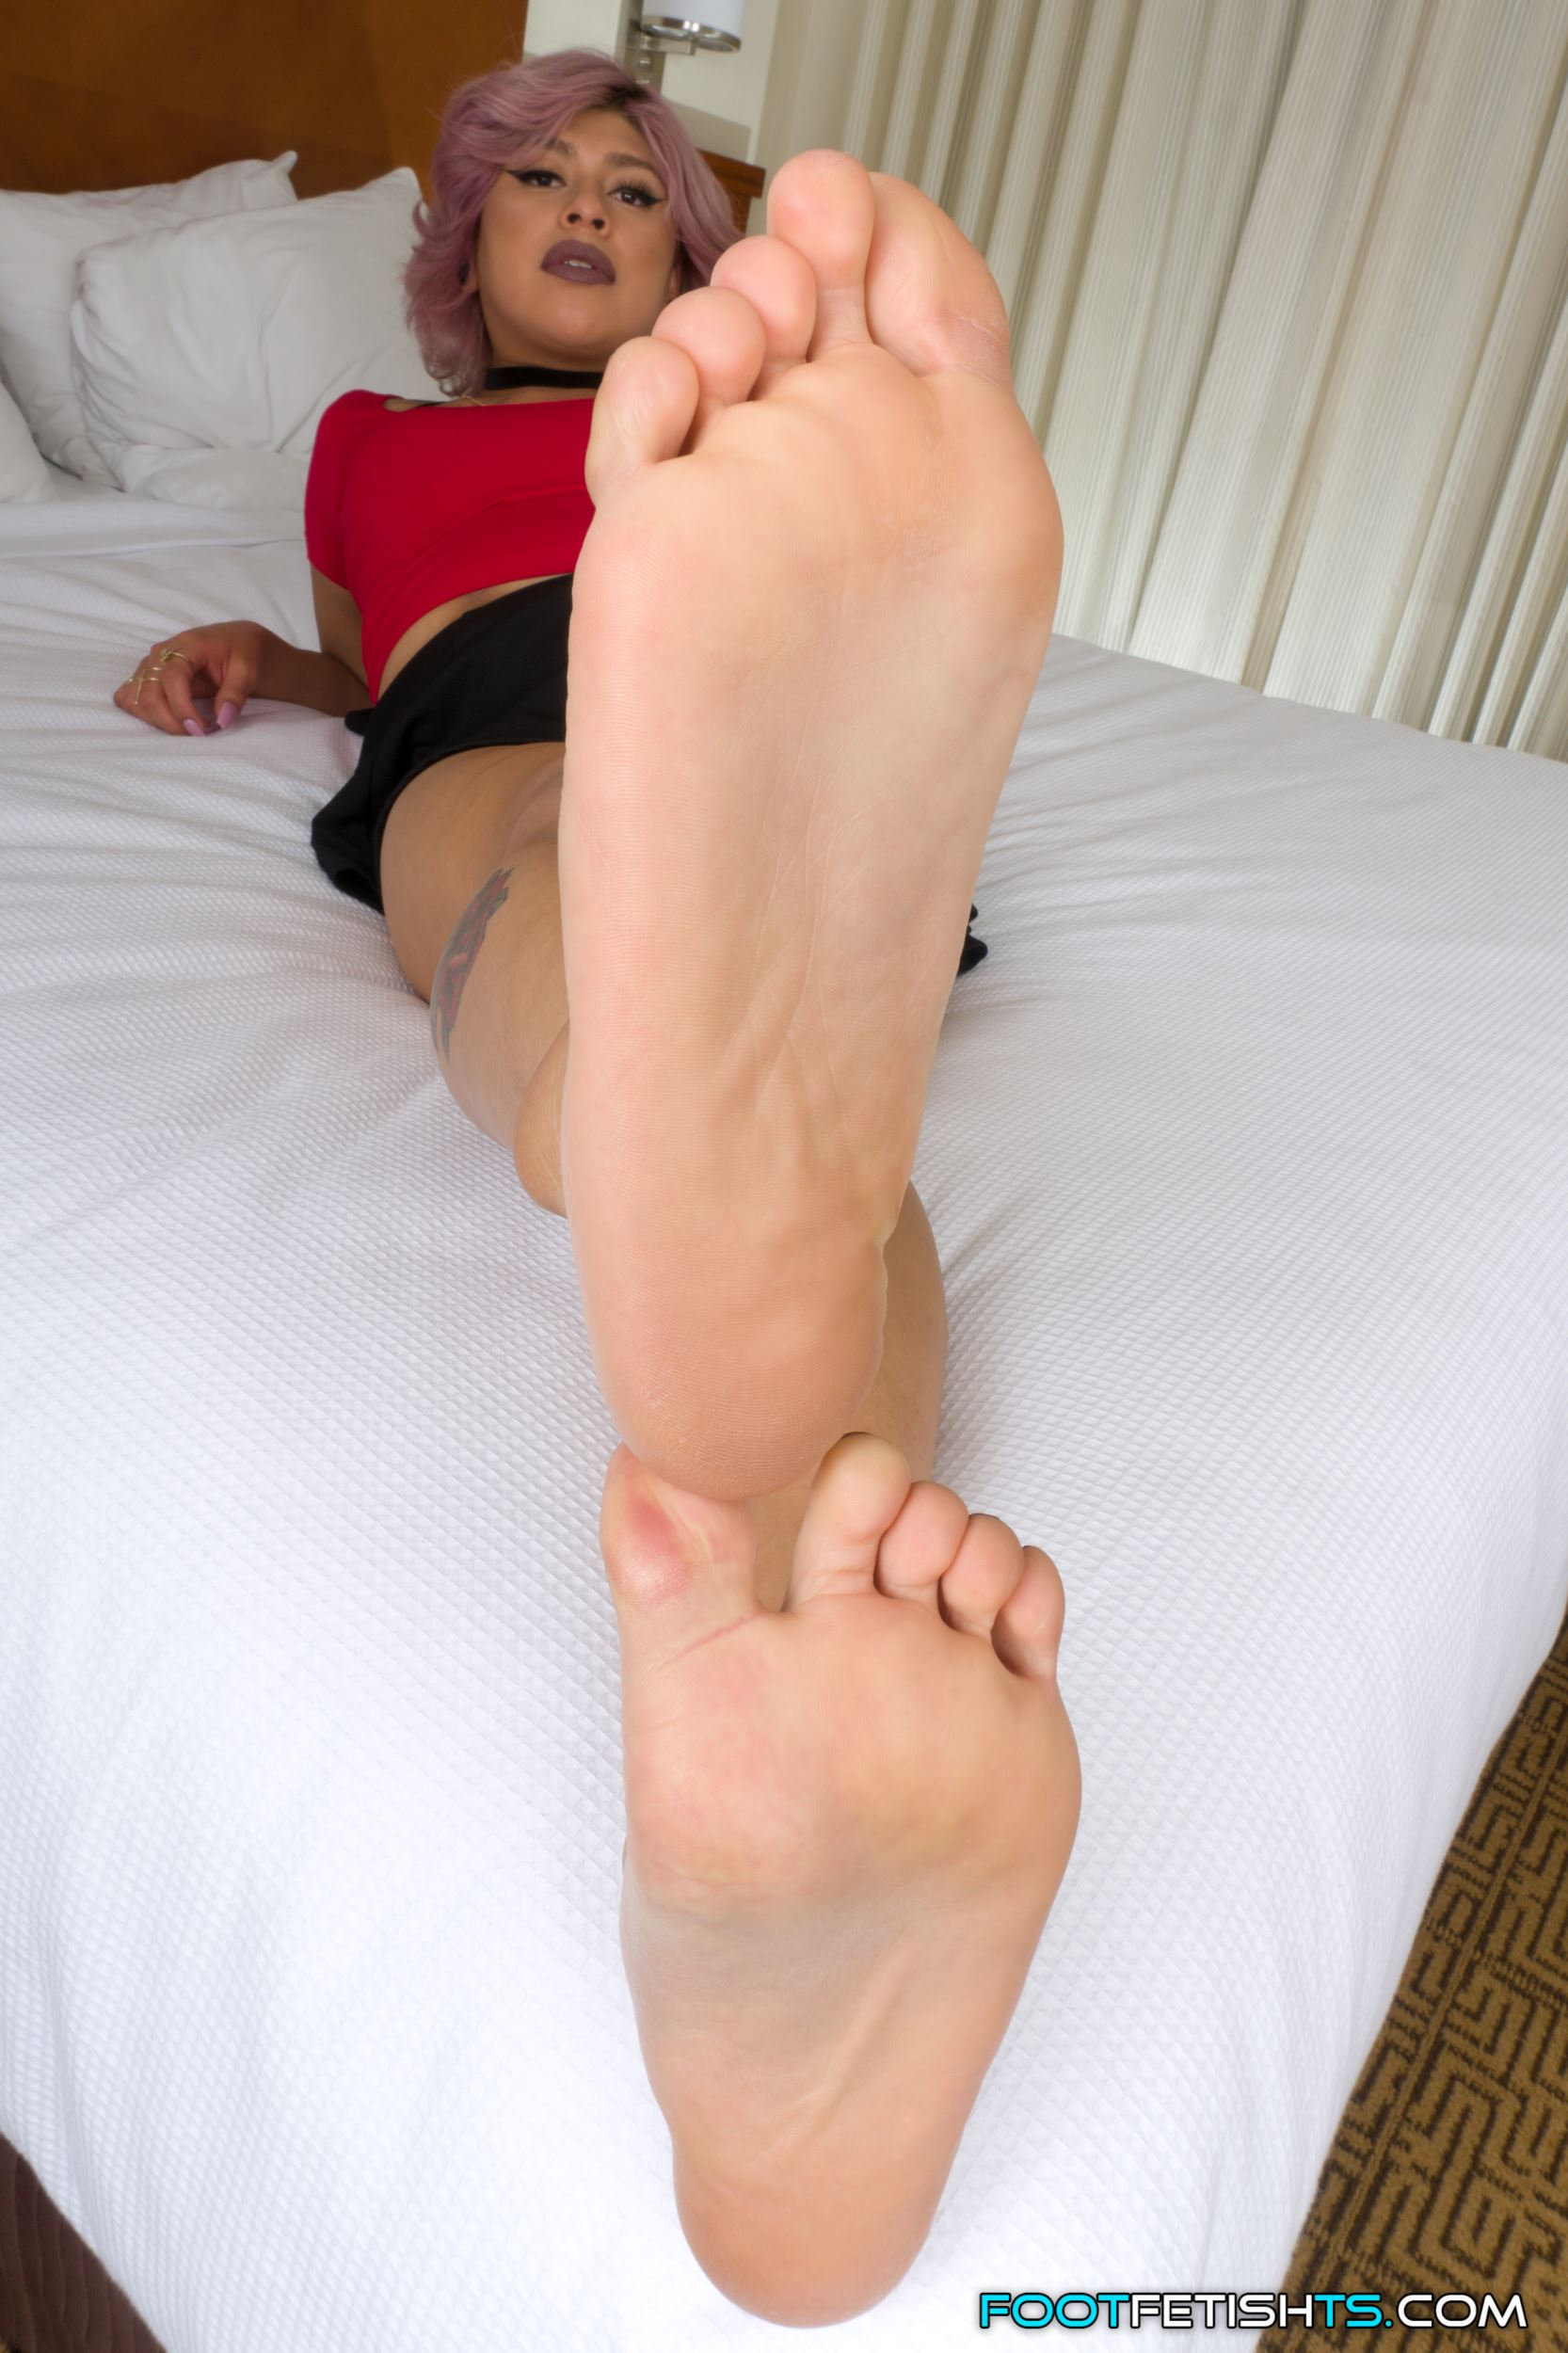 Japanese foot fetish websites